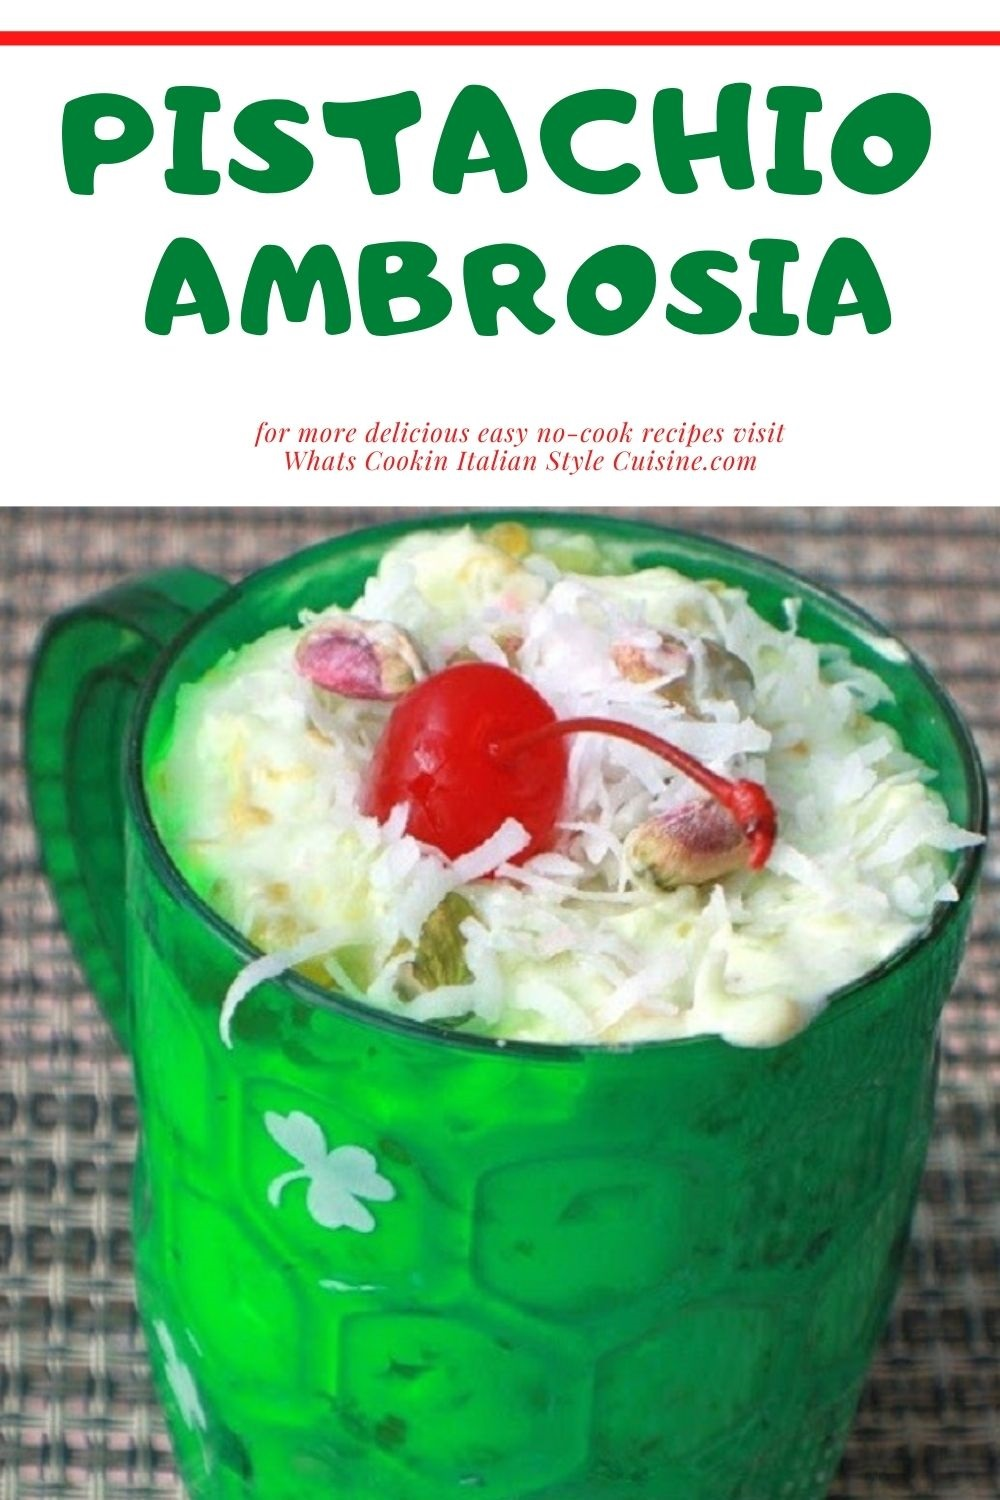 this is a green marshmallow dessert called Watergate Salad or Ambrosia